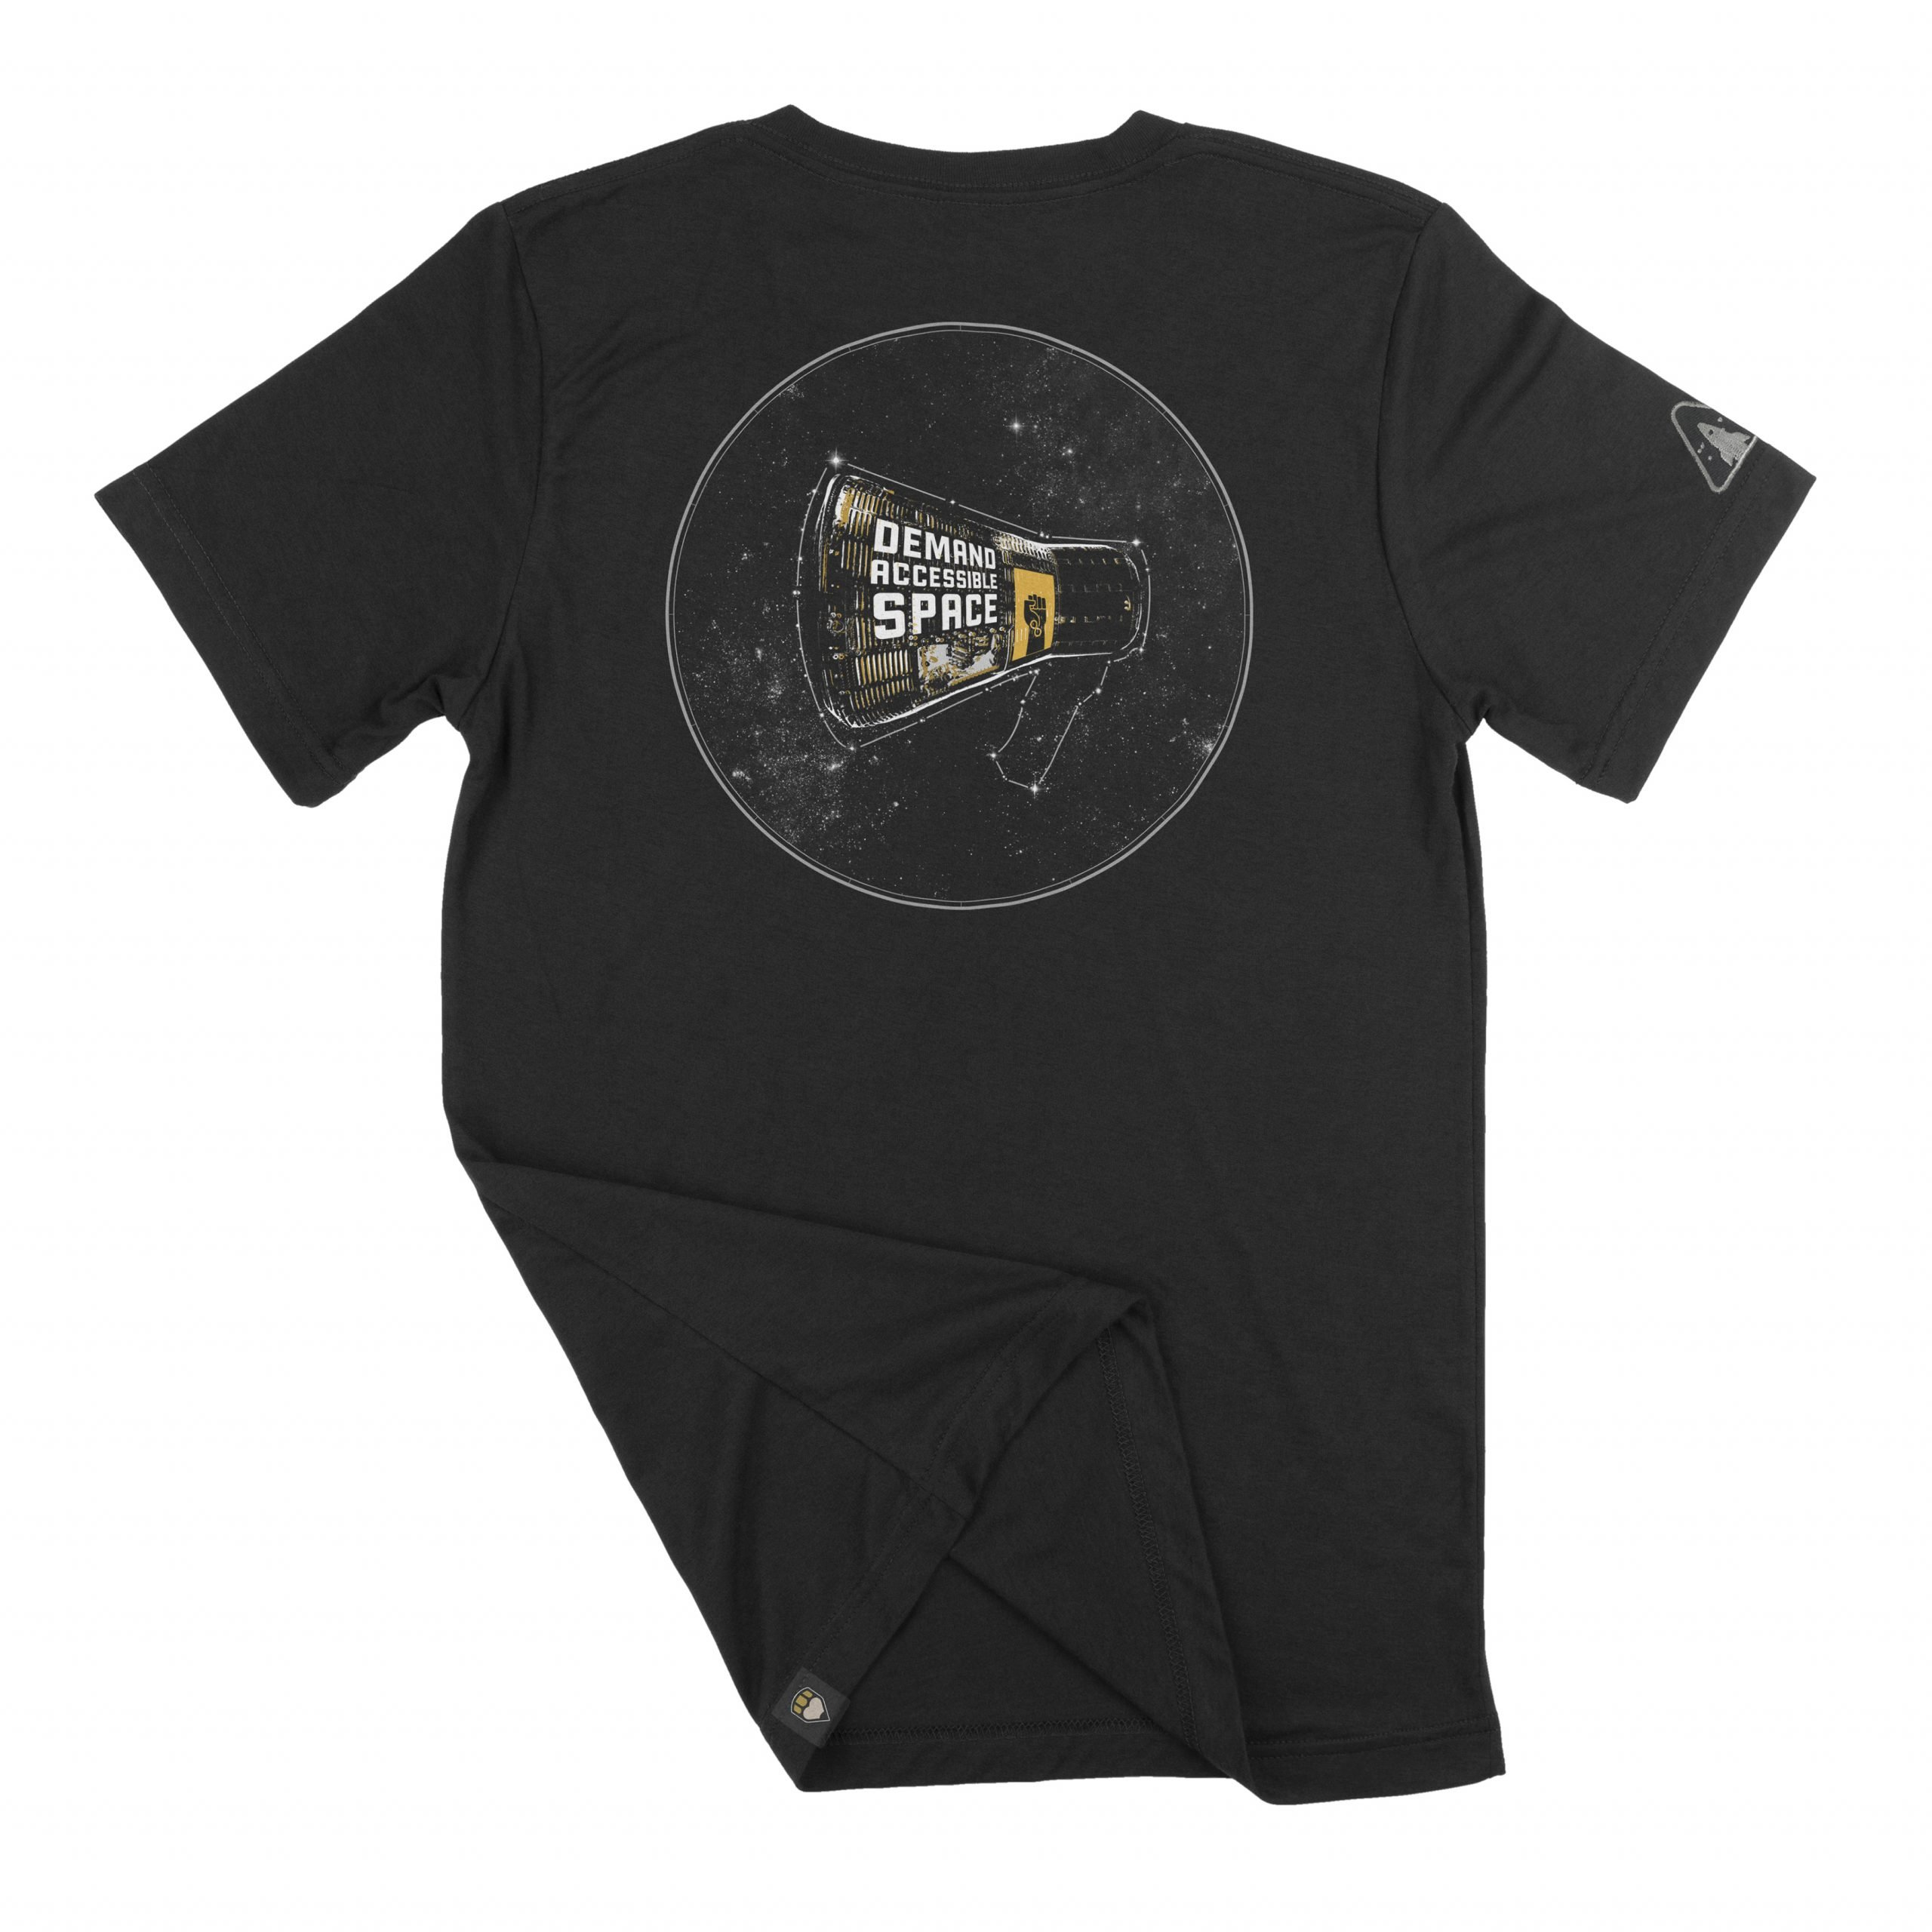 """The back of black t-shirt featuring the """"Rise Up"""" design. The design features a space capsule modeled after the Mercury capsule, depicted in high contrast black and white with gold details, enclosed in a white circle. Wrapping the side of the capsule are the words, """"Demand Accessible Space"""" above a small window. Next to the text and window is a gold banner with a black fist, a gold infinity symbol on the arm of the fist. The banner is a """"Black Disabled Lives Matter"""" graphic created by the same artist. The capsule floats in front of a field of stars, and is outlined by a constellation in the shape of a megaphone."""